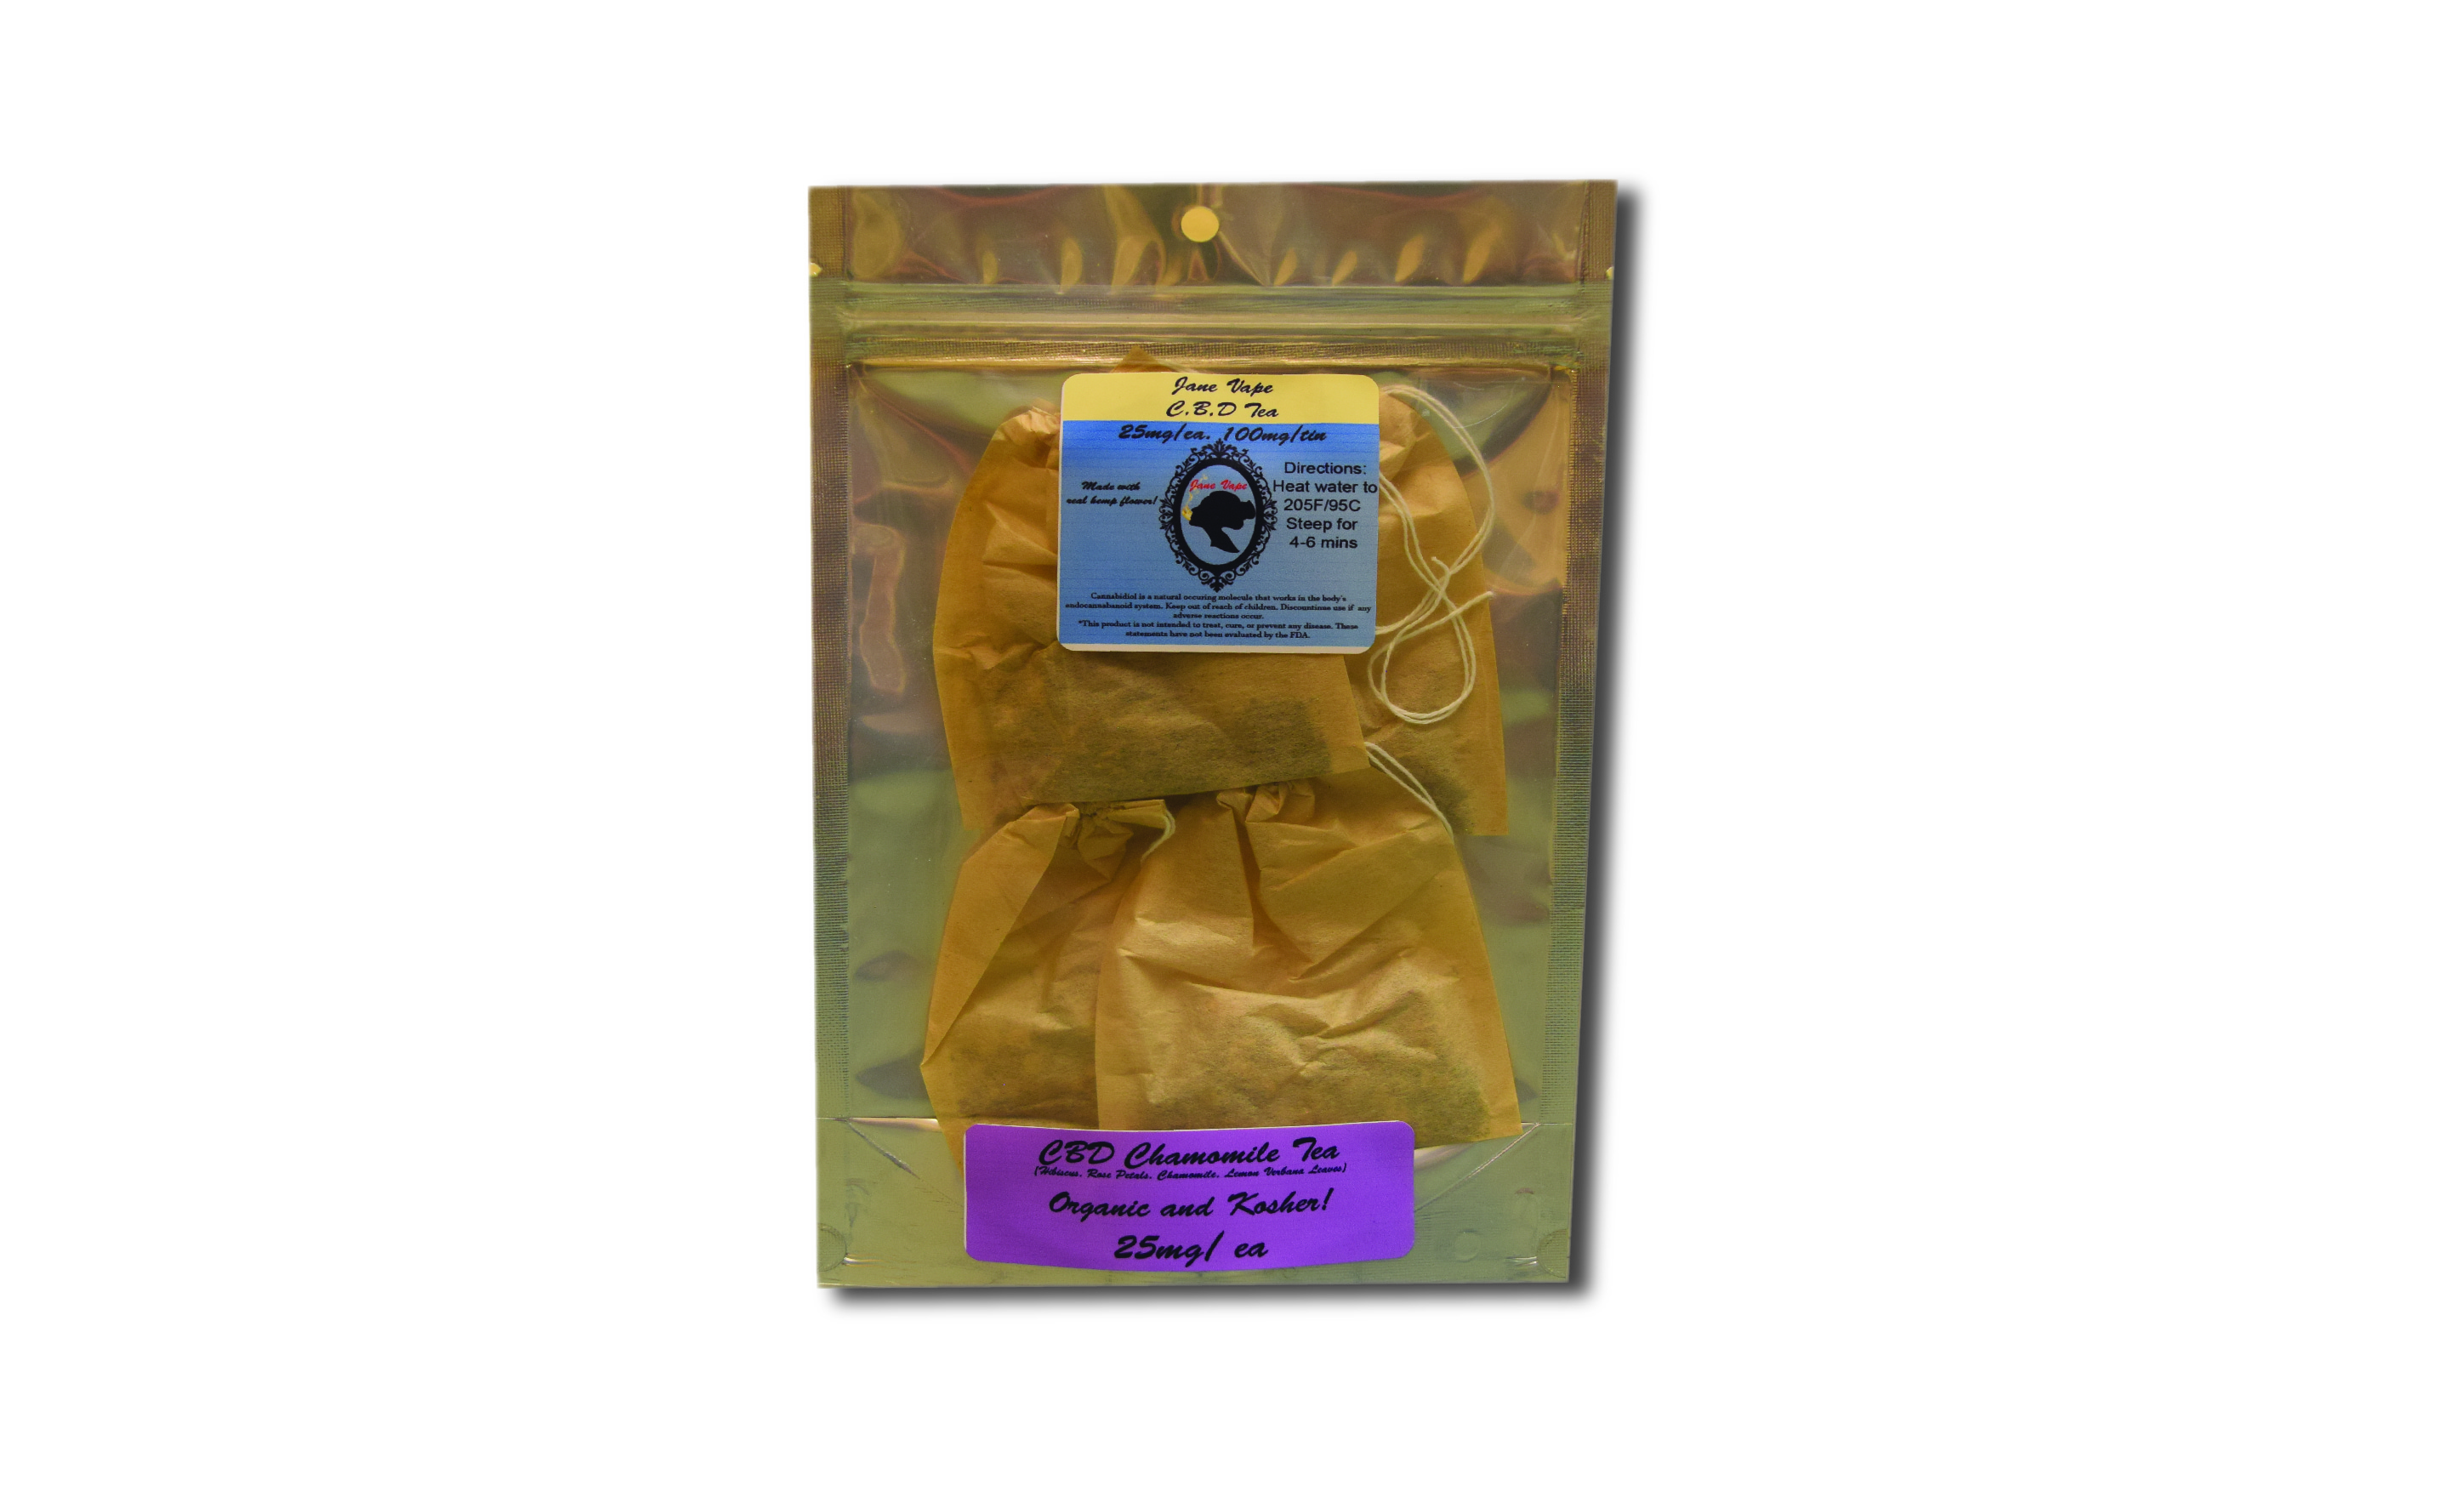 100mg Tea Package (chamomile)